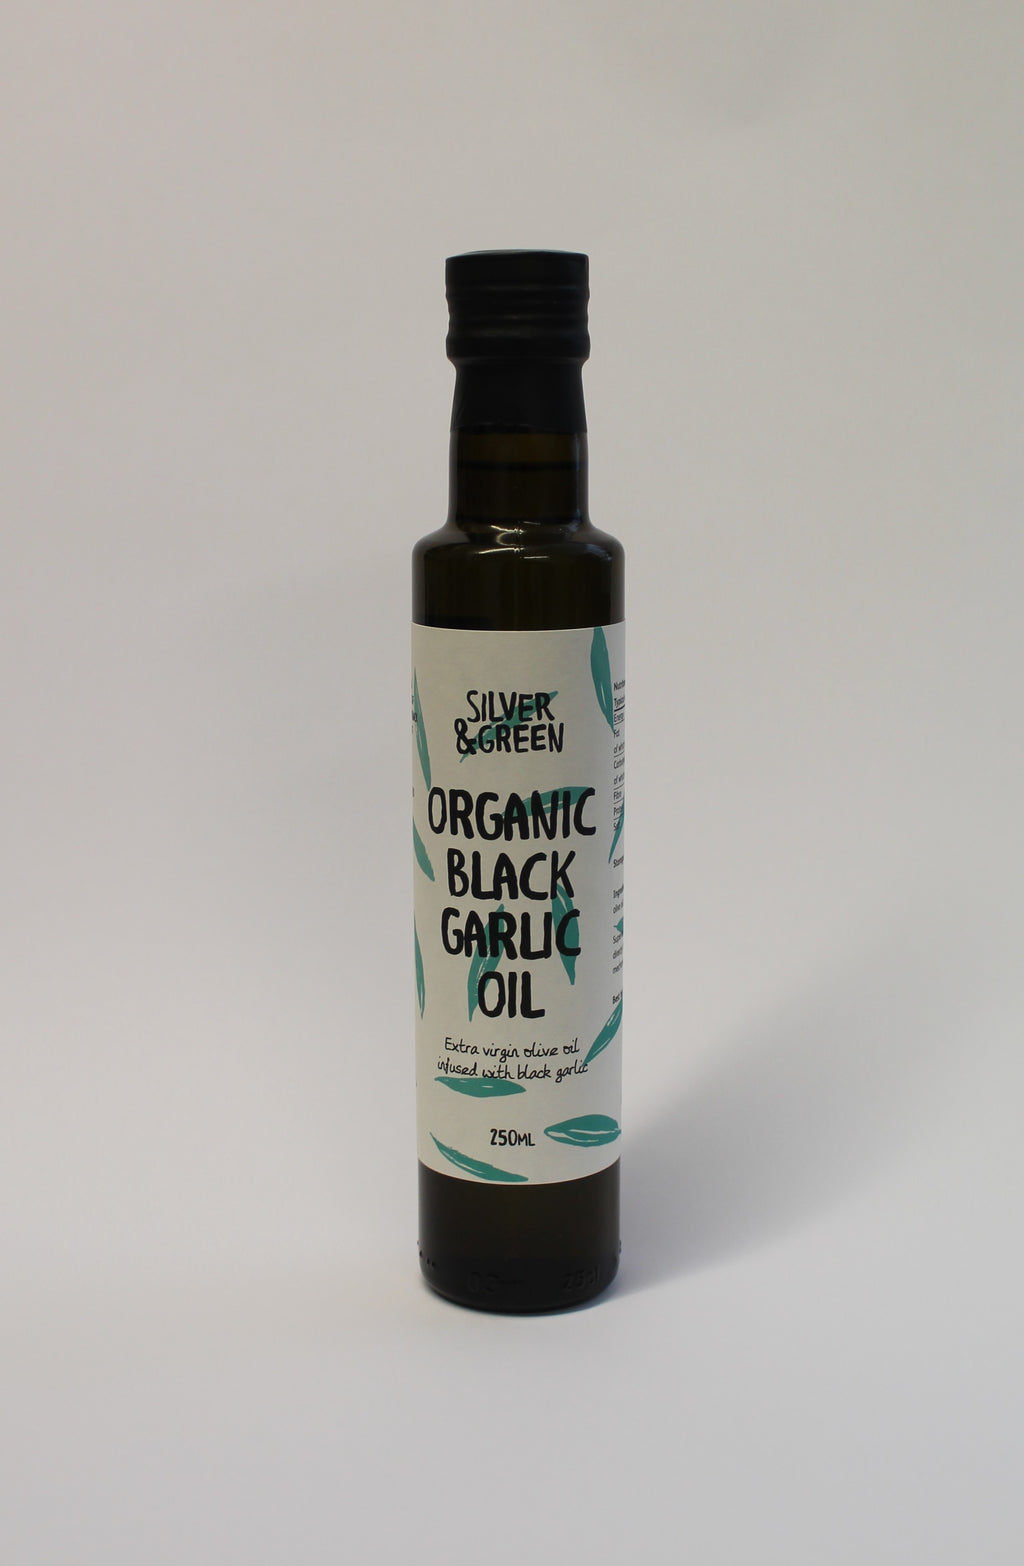 Organic Black Garlic Oil